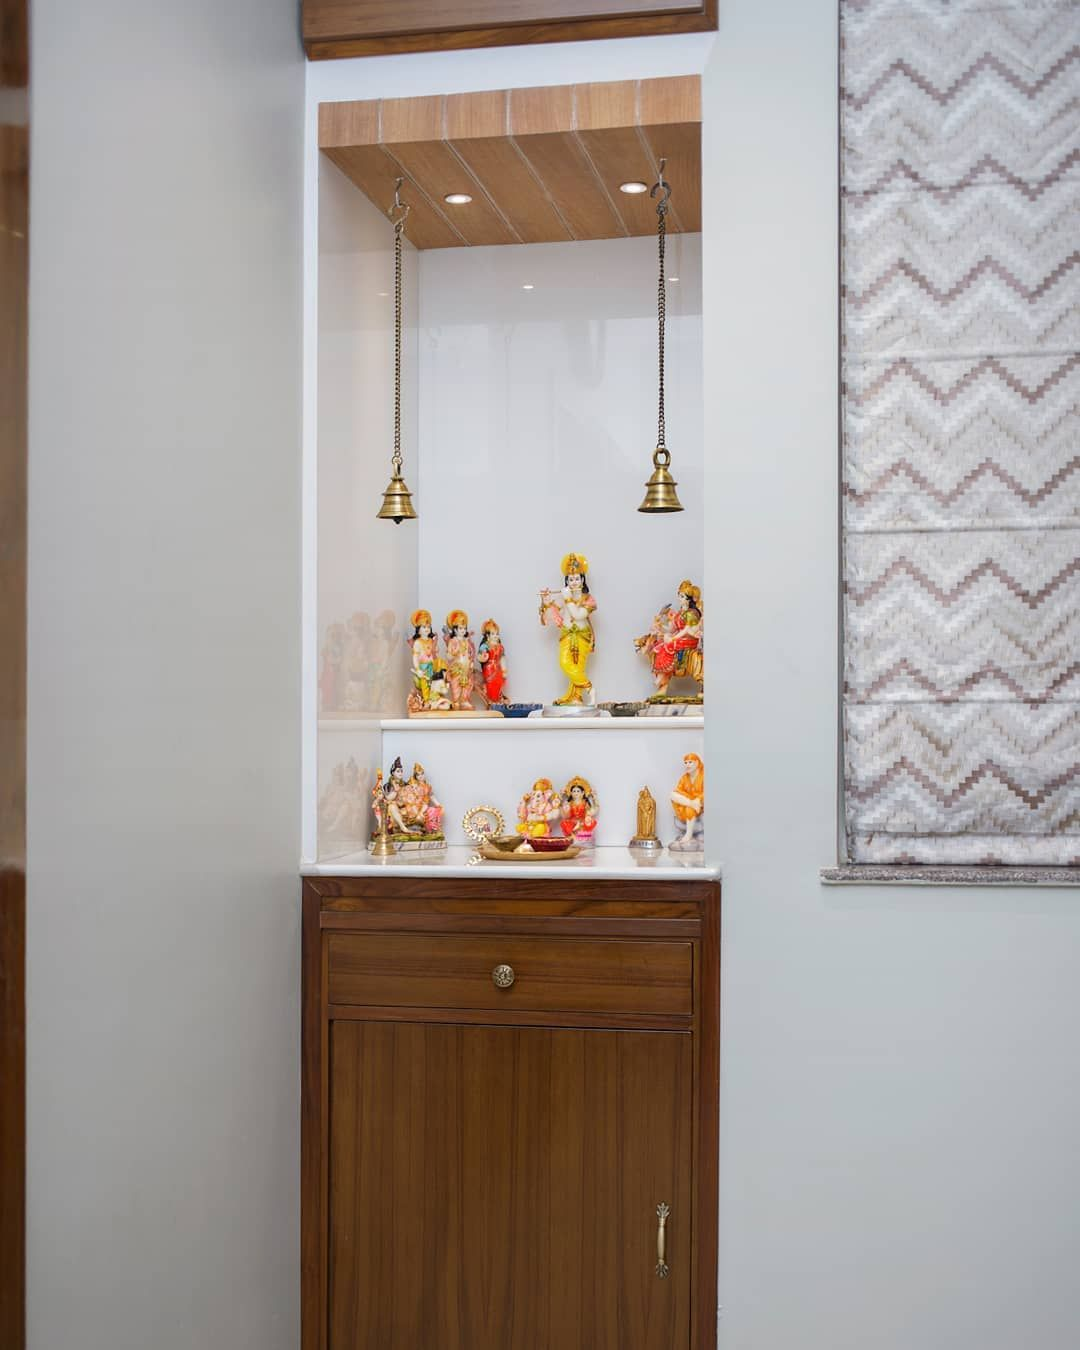 10 Pooja Room Door Designs That Beautify Your Mandir Entrance: #SacredSpaces Your Home Deserves Your Very Own Spiritual